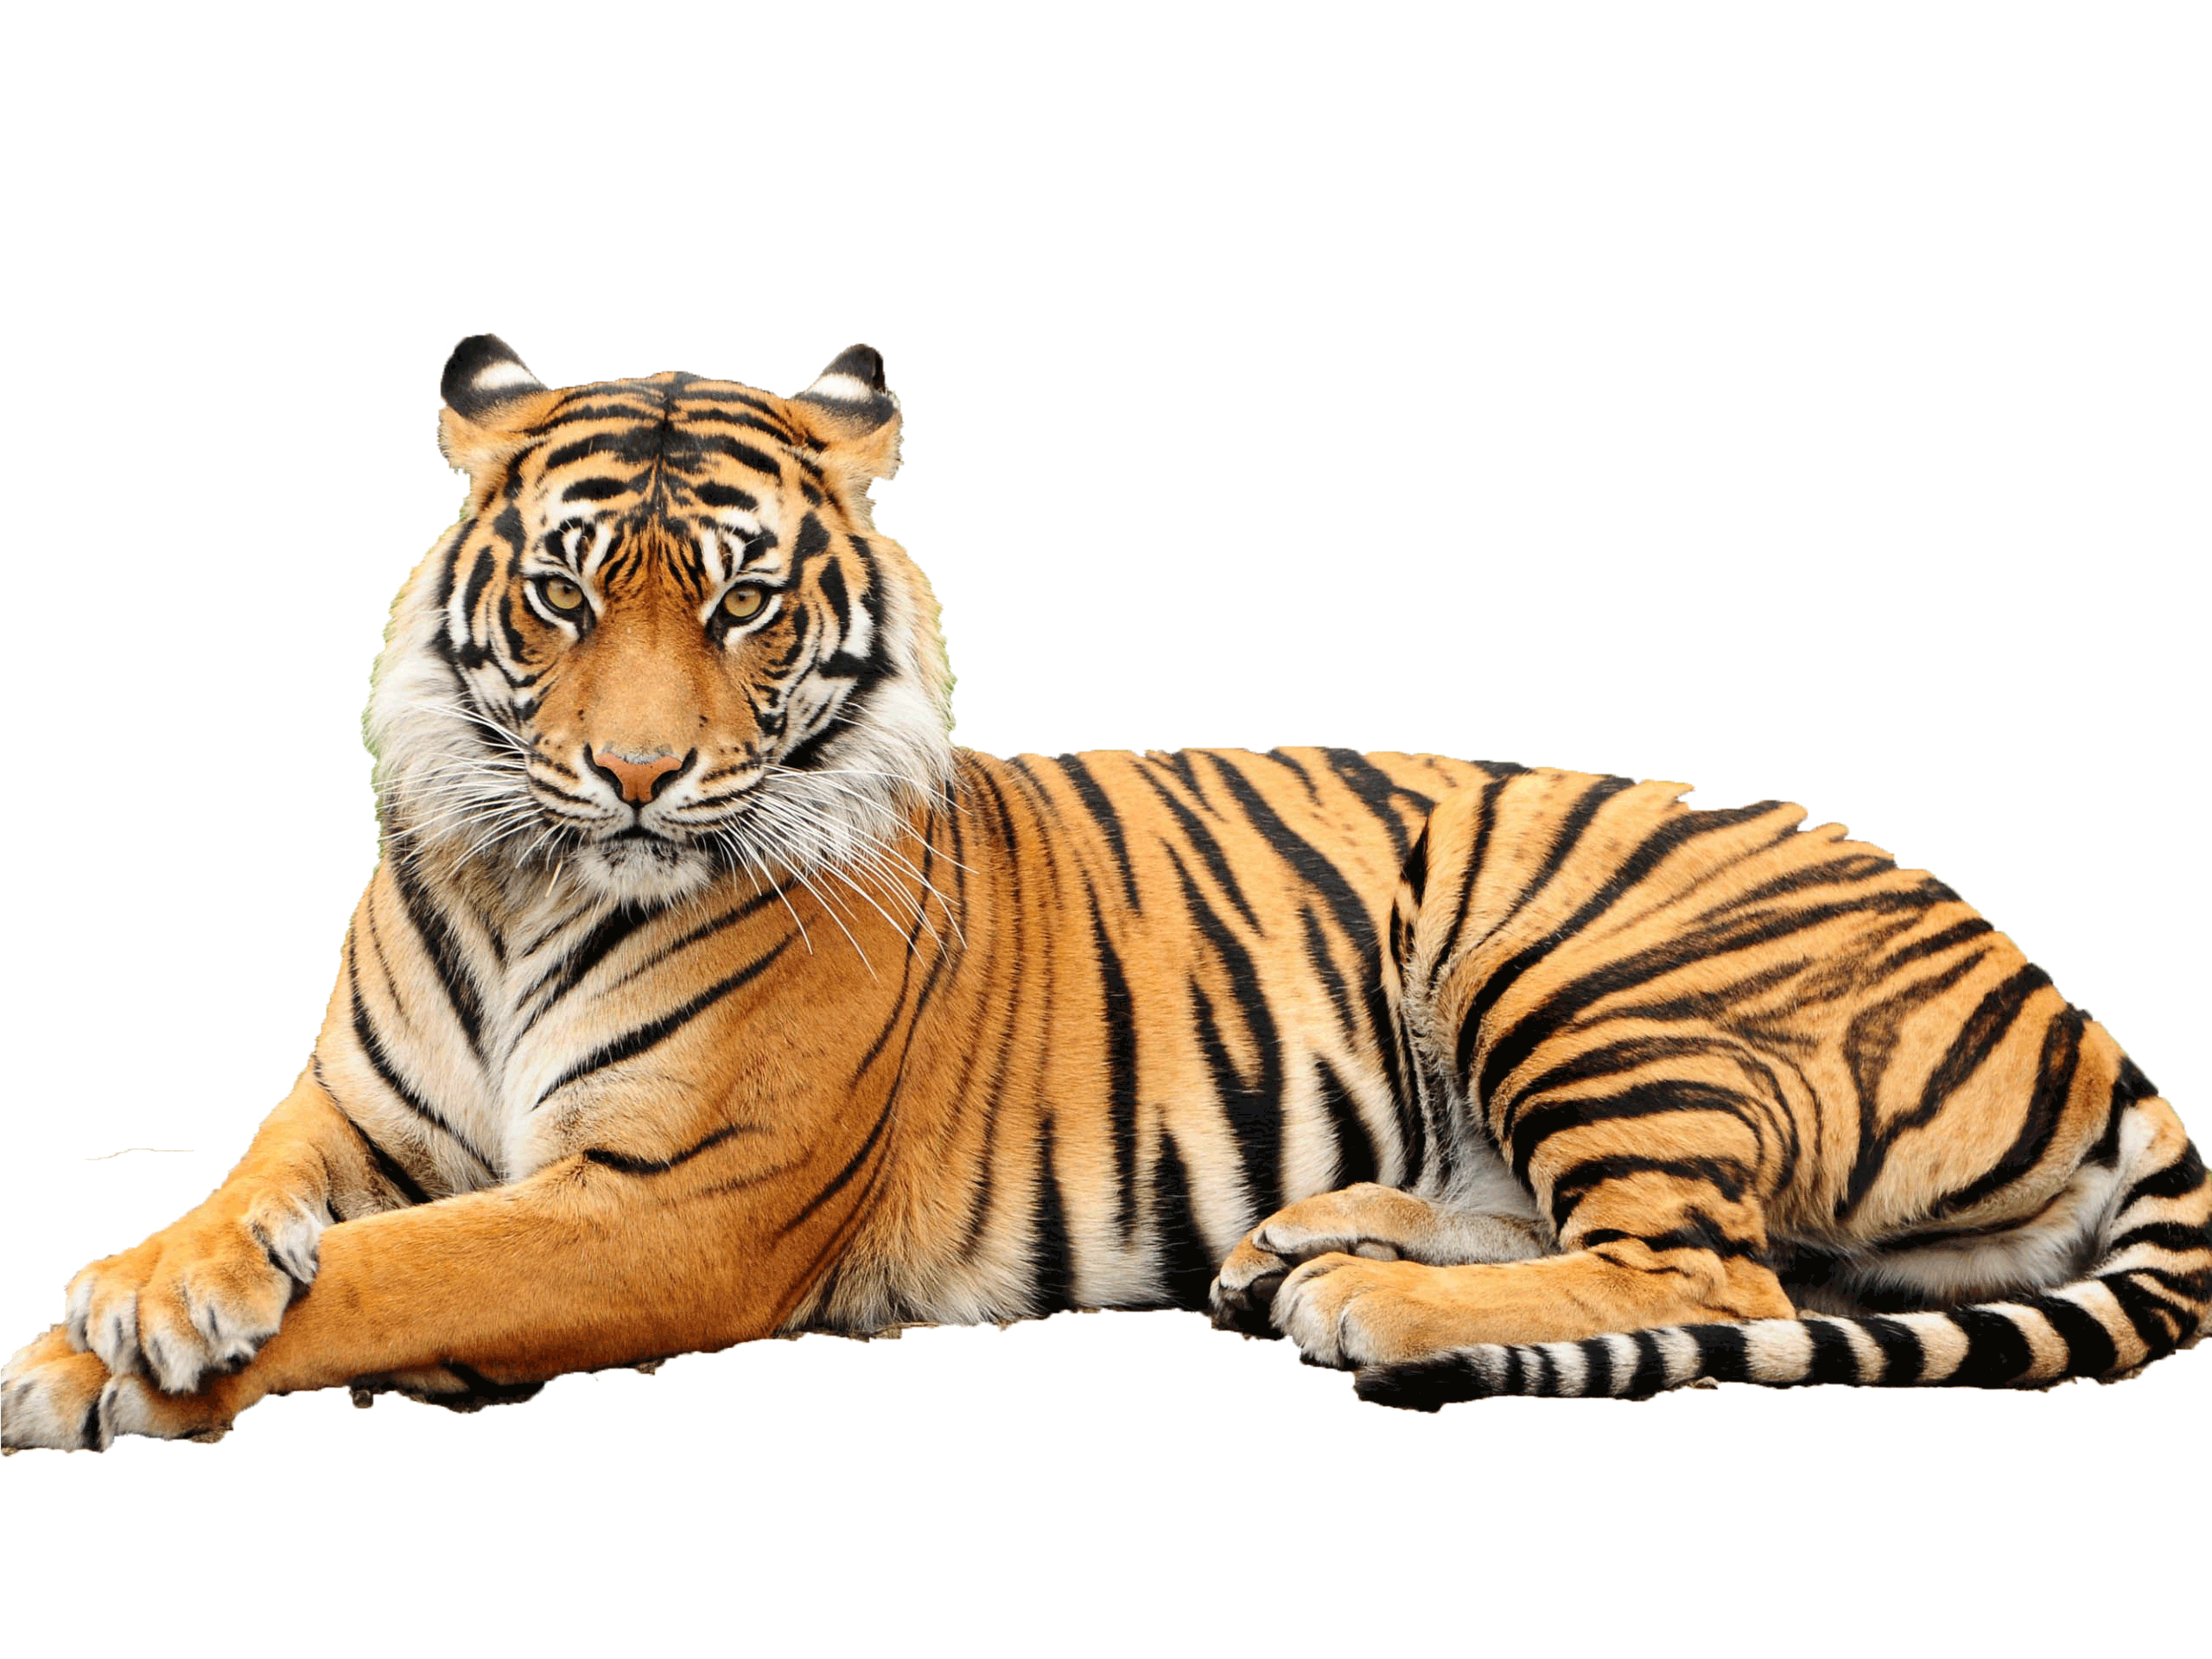 tiger hd png transparent tiger hd images. | pluspng